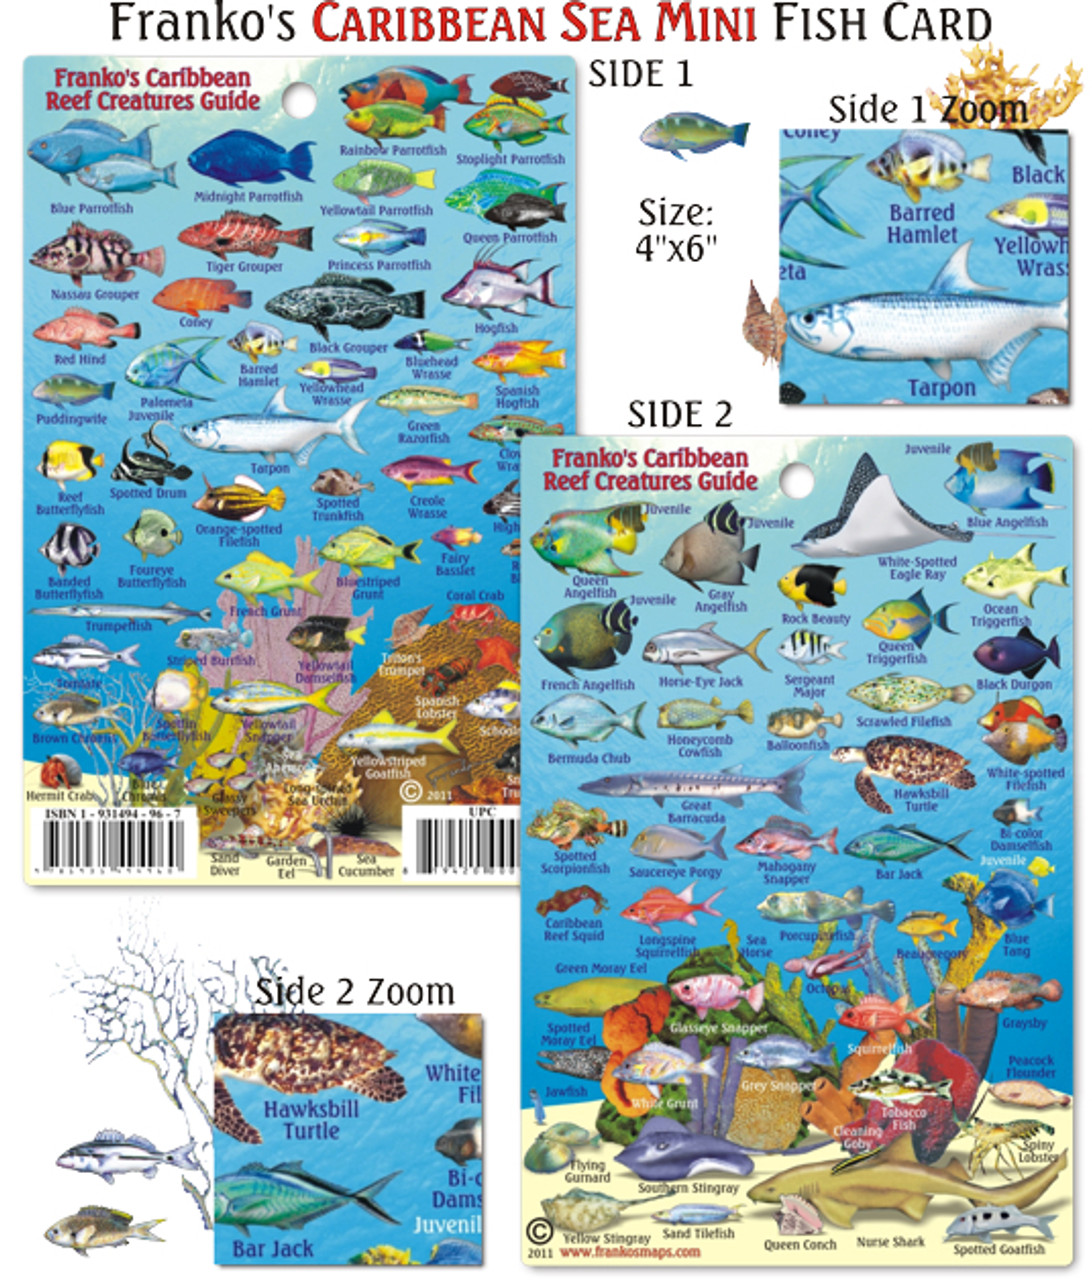 Caribbean reef creatures guide mini caribbean fish card for Mail order fish